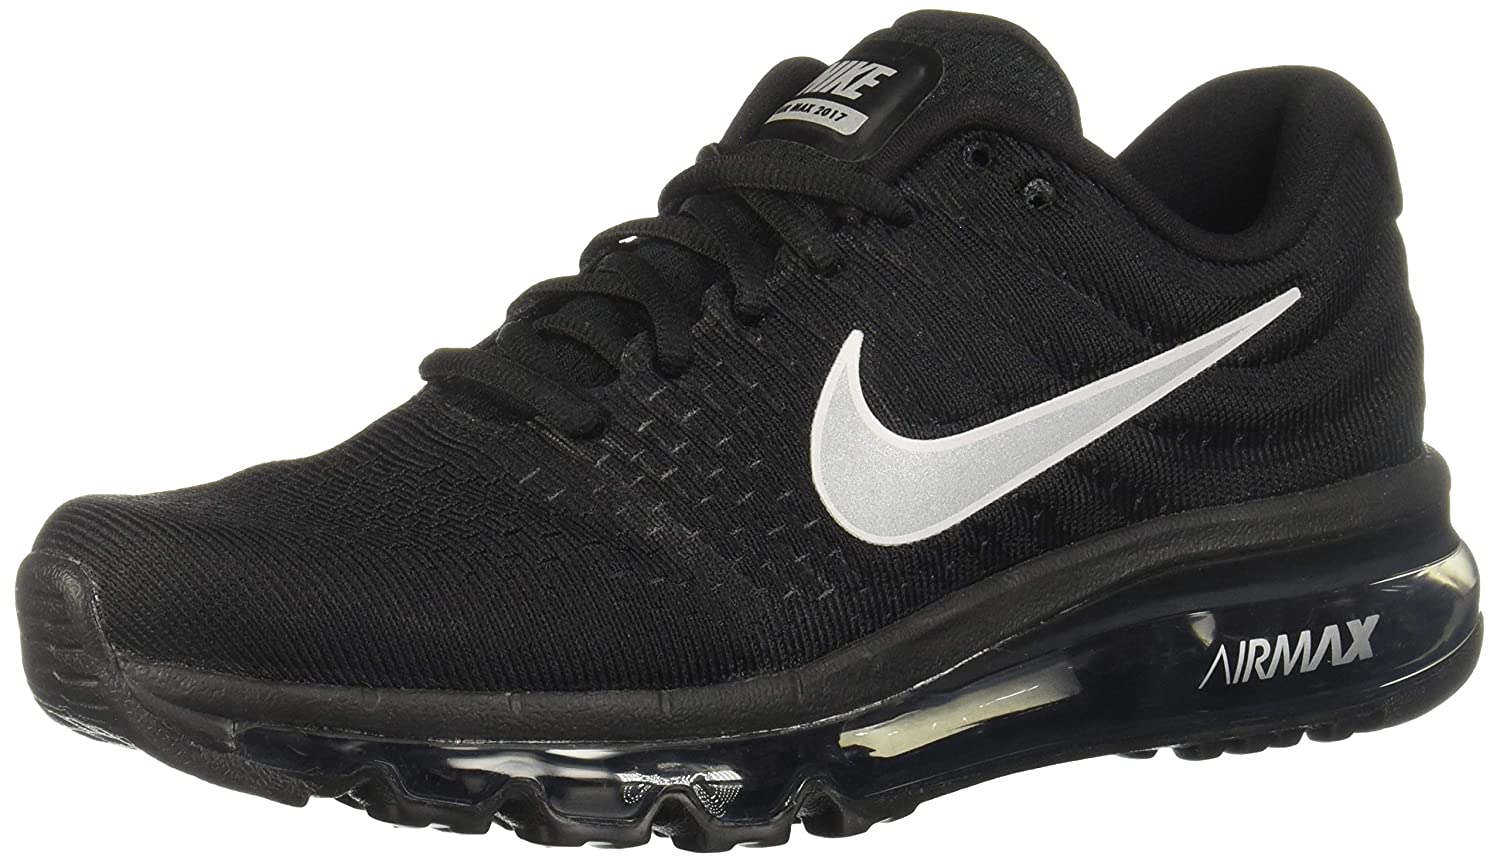 on sale f98b1 d6bf1 Amazon.com   Nike Womens Air Max 2017 Running Shoes Black White Anthracite  849560-001 Size 10   Road Running